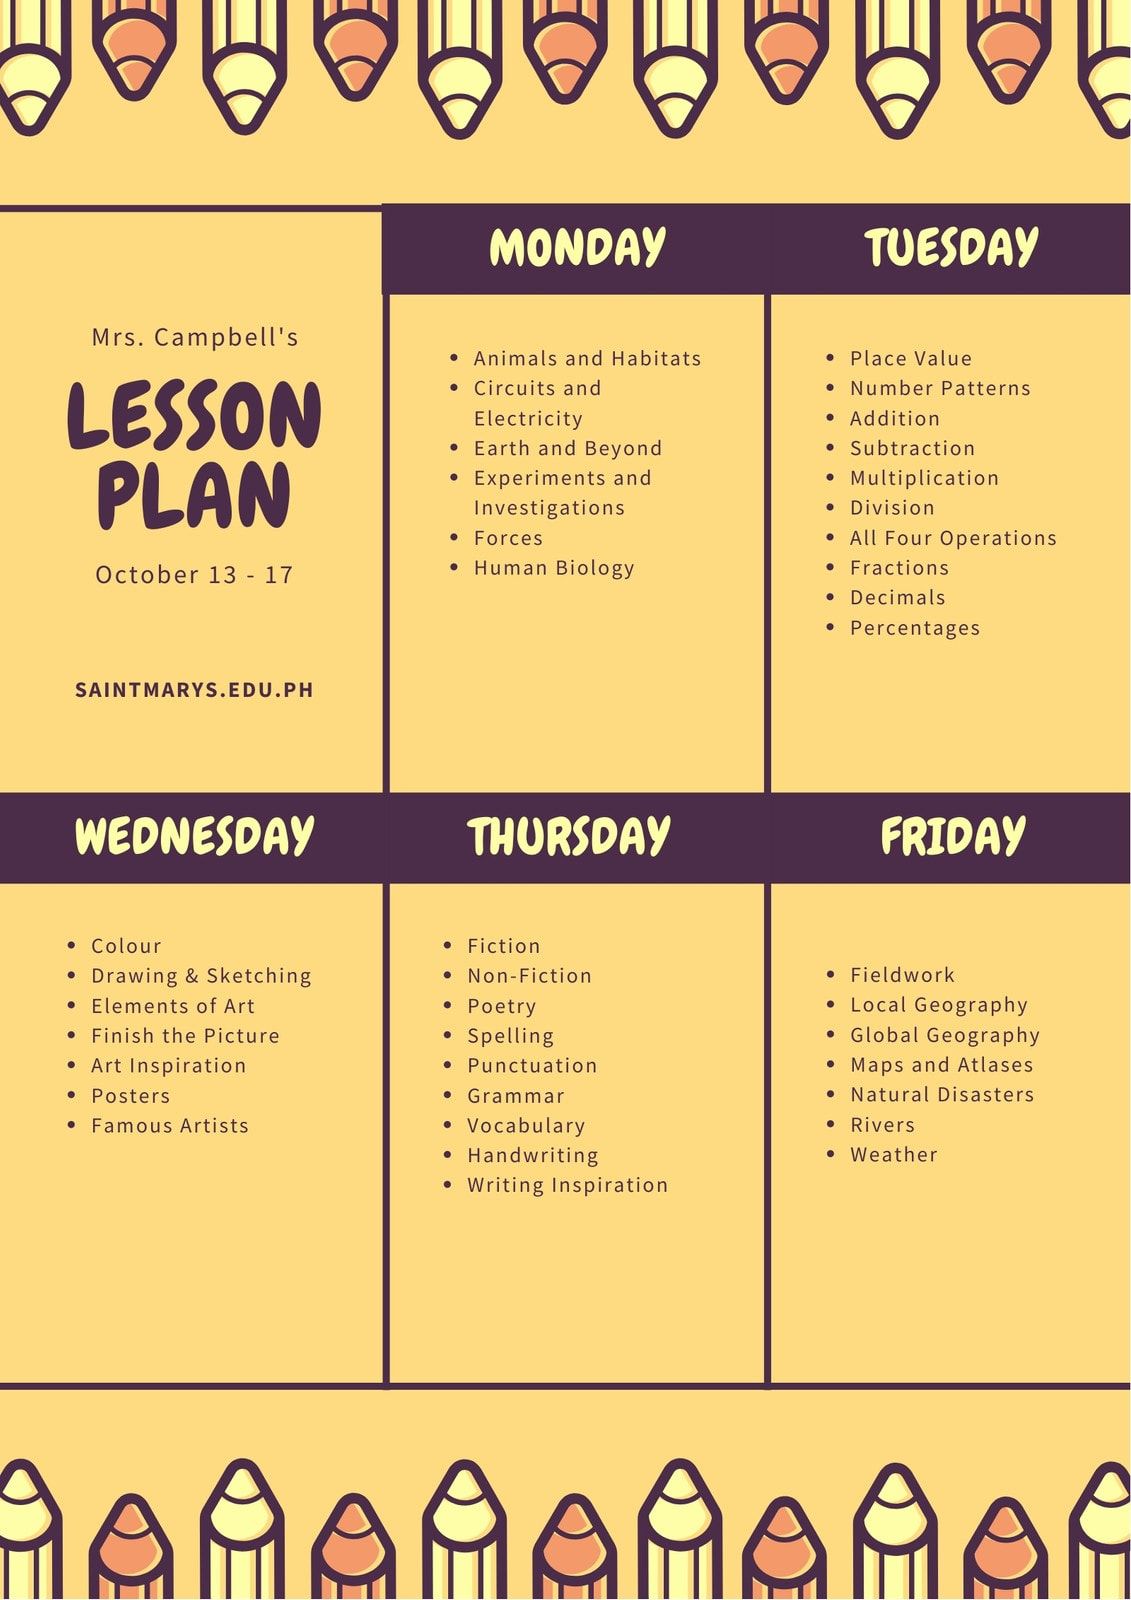 Yellow with Pencil Vectors Lesson Plan General Weekly Schedule